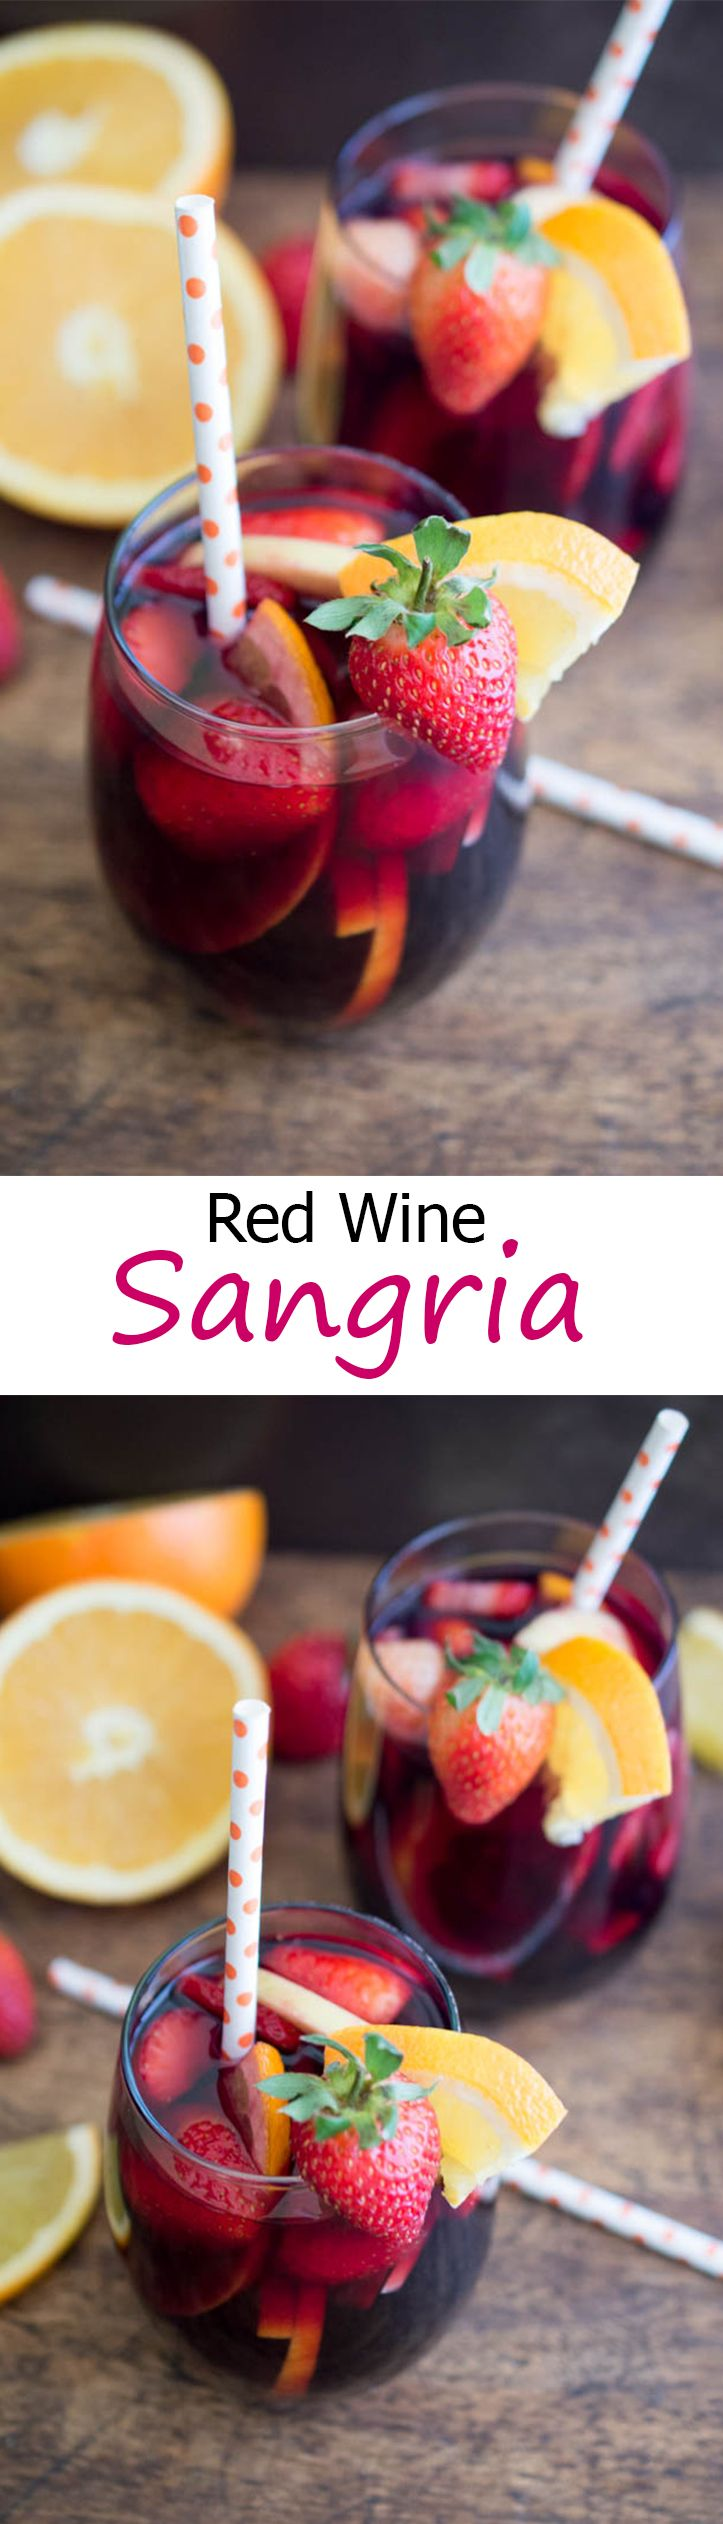 Fruity Red Wine Sangria. Made with fresh fruit, red wine, brandy and pomegranate juice. Perfect Fall or Winter cocktail. | chefsavvy.com #recipe #drink #sangria #fruit